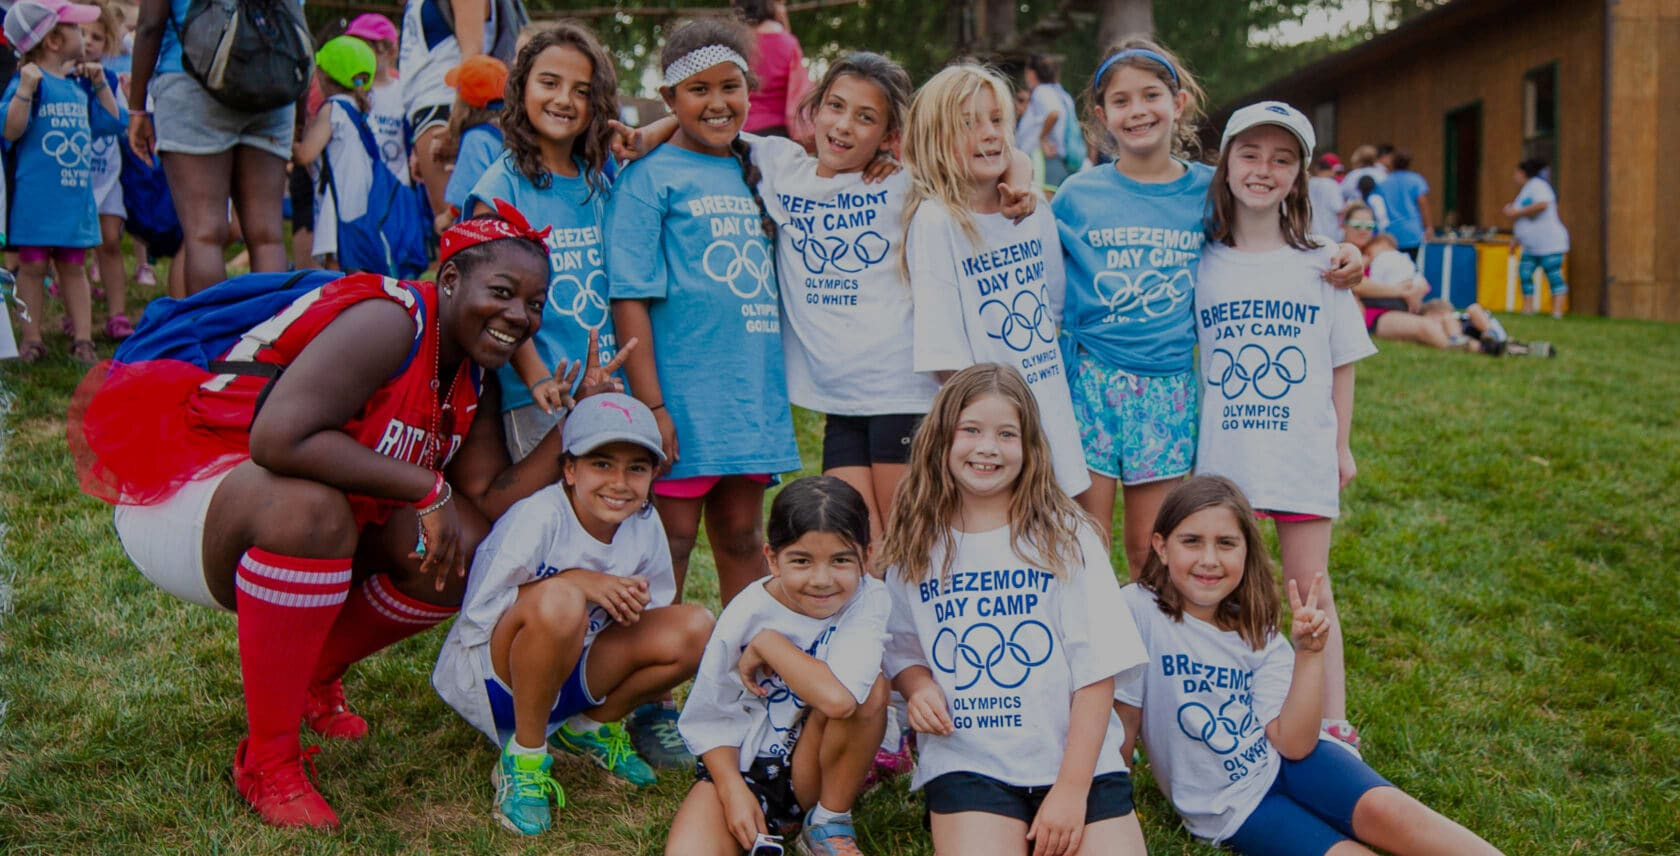 Group of campers smiling and posing for the camera during the olympics event.